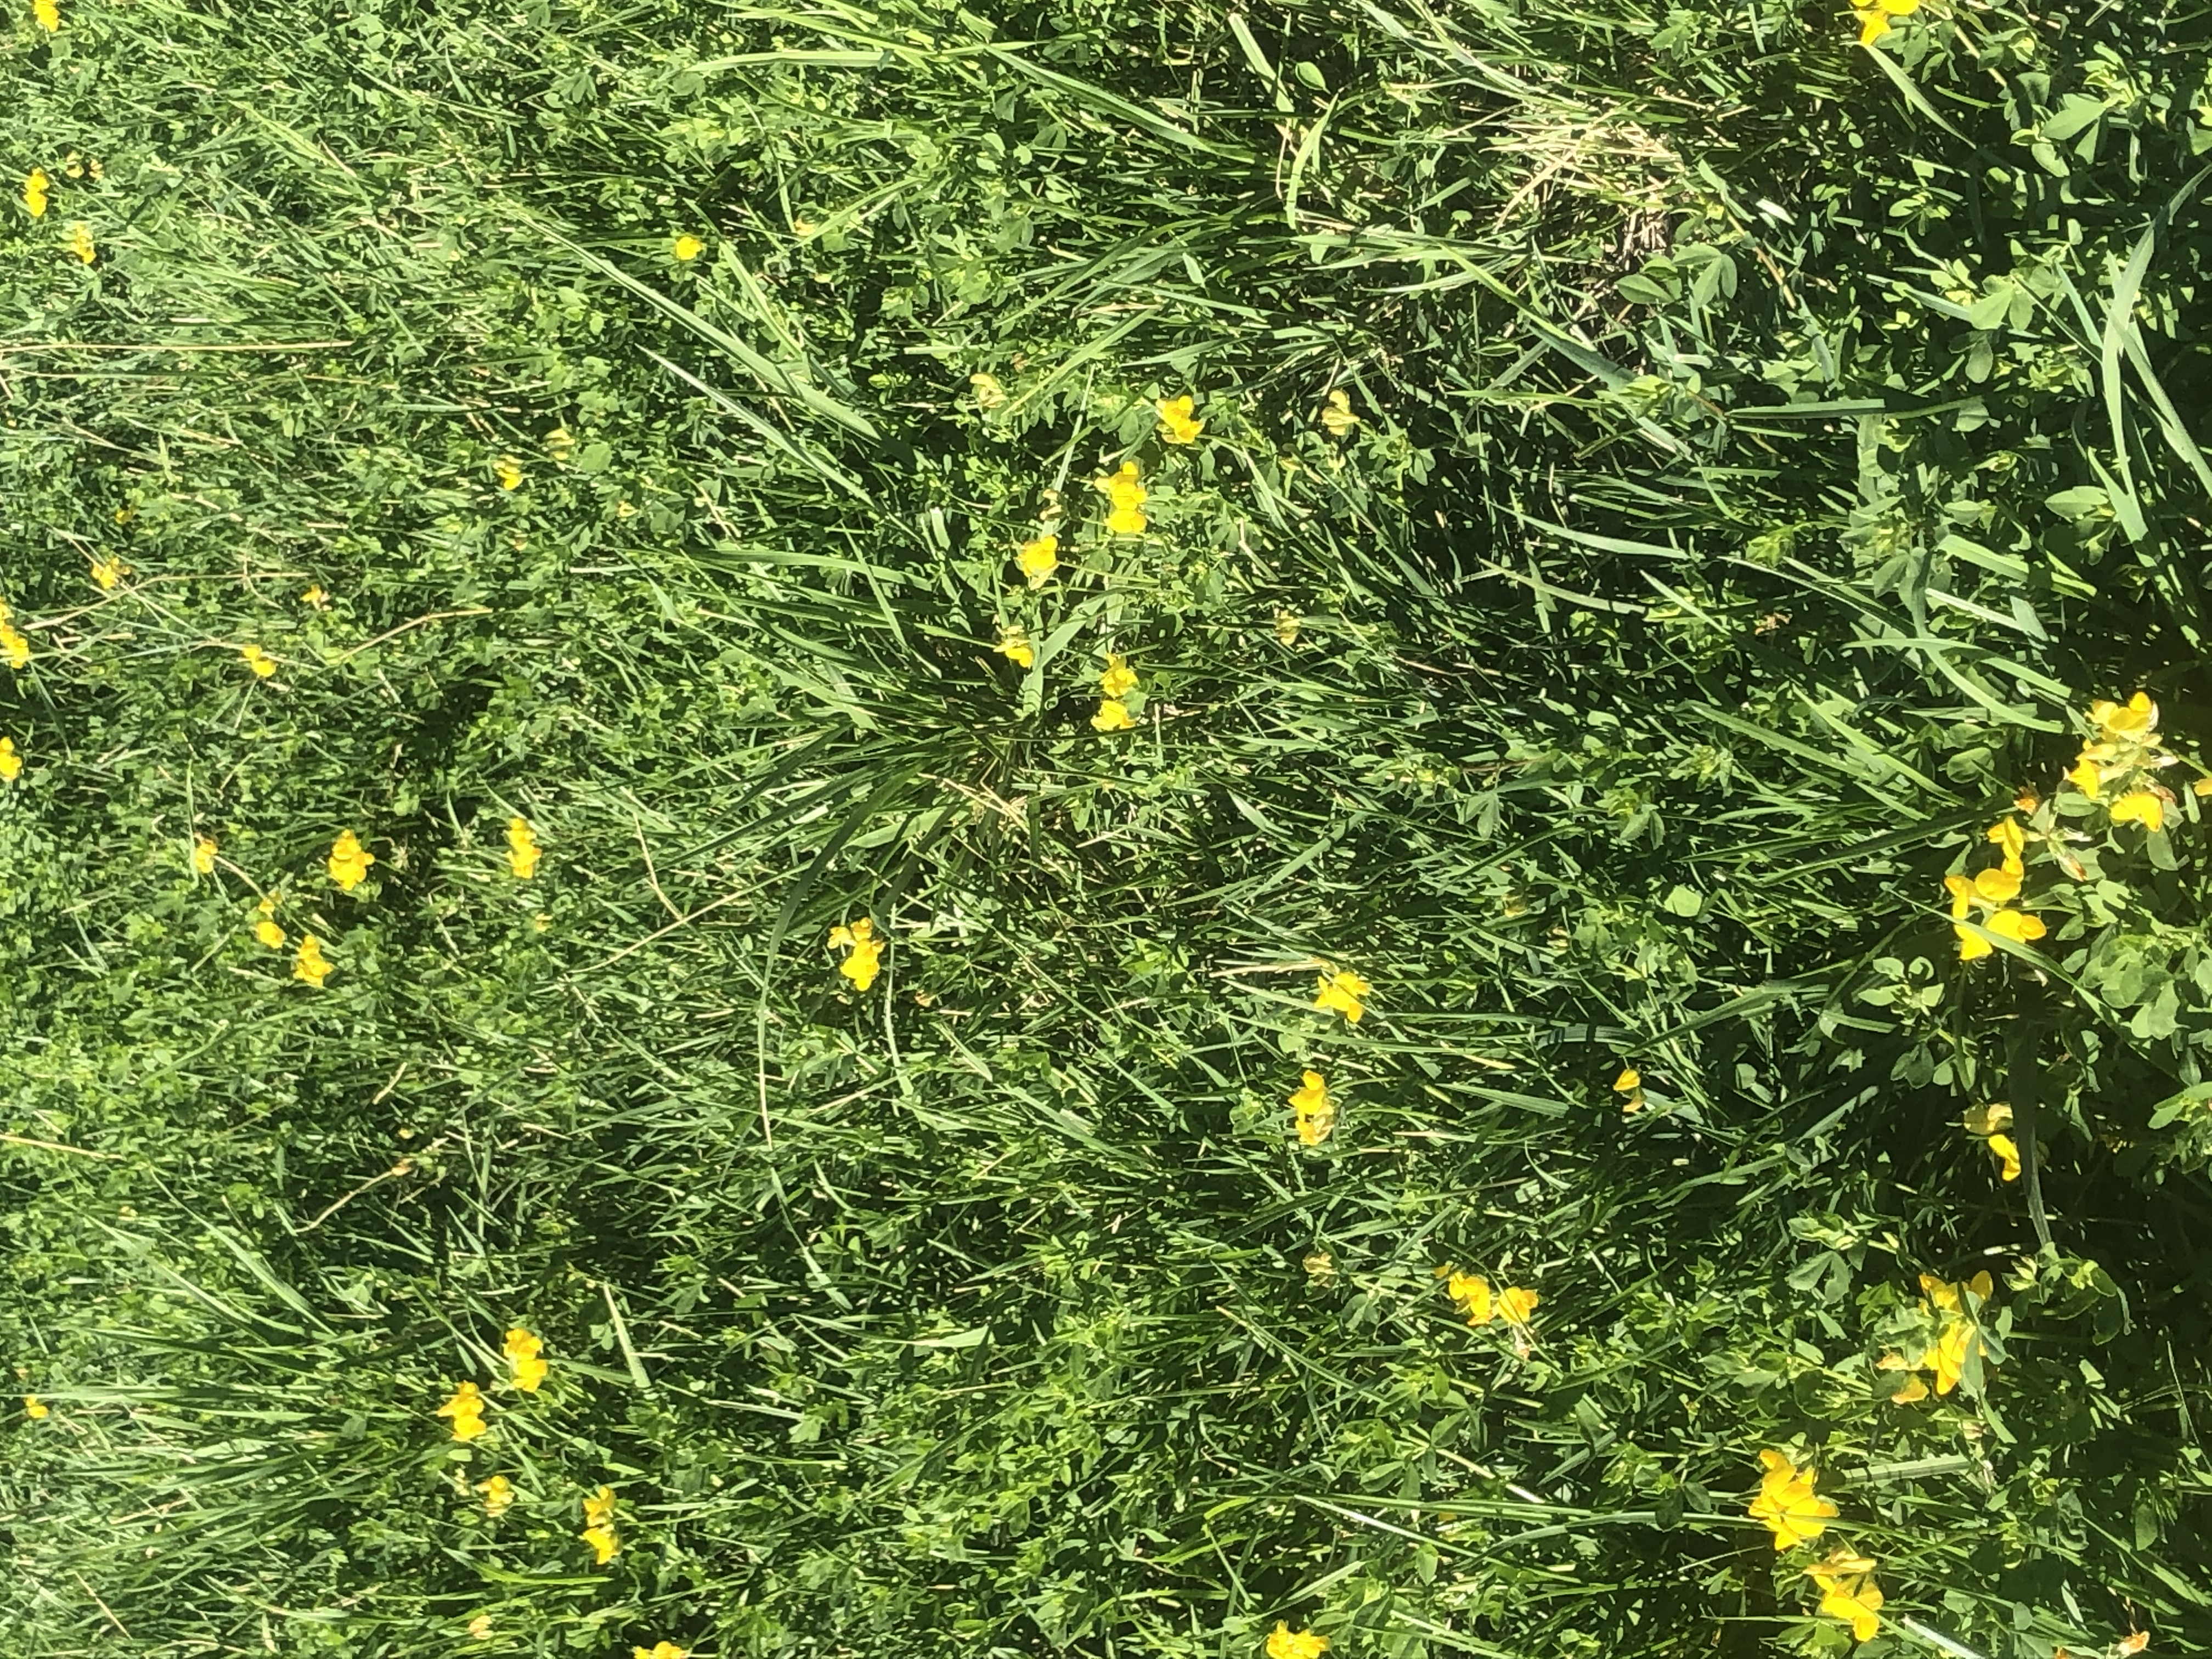 Yellow flowers in a grassy pasture